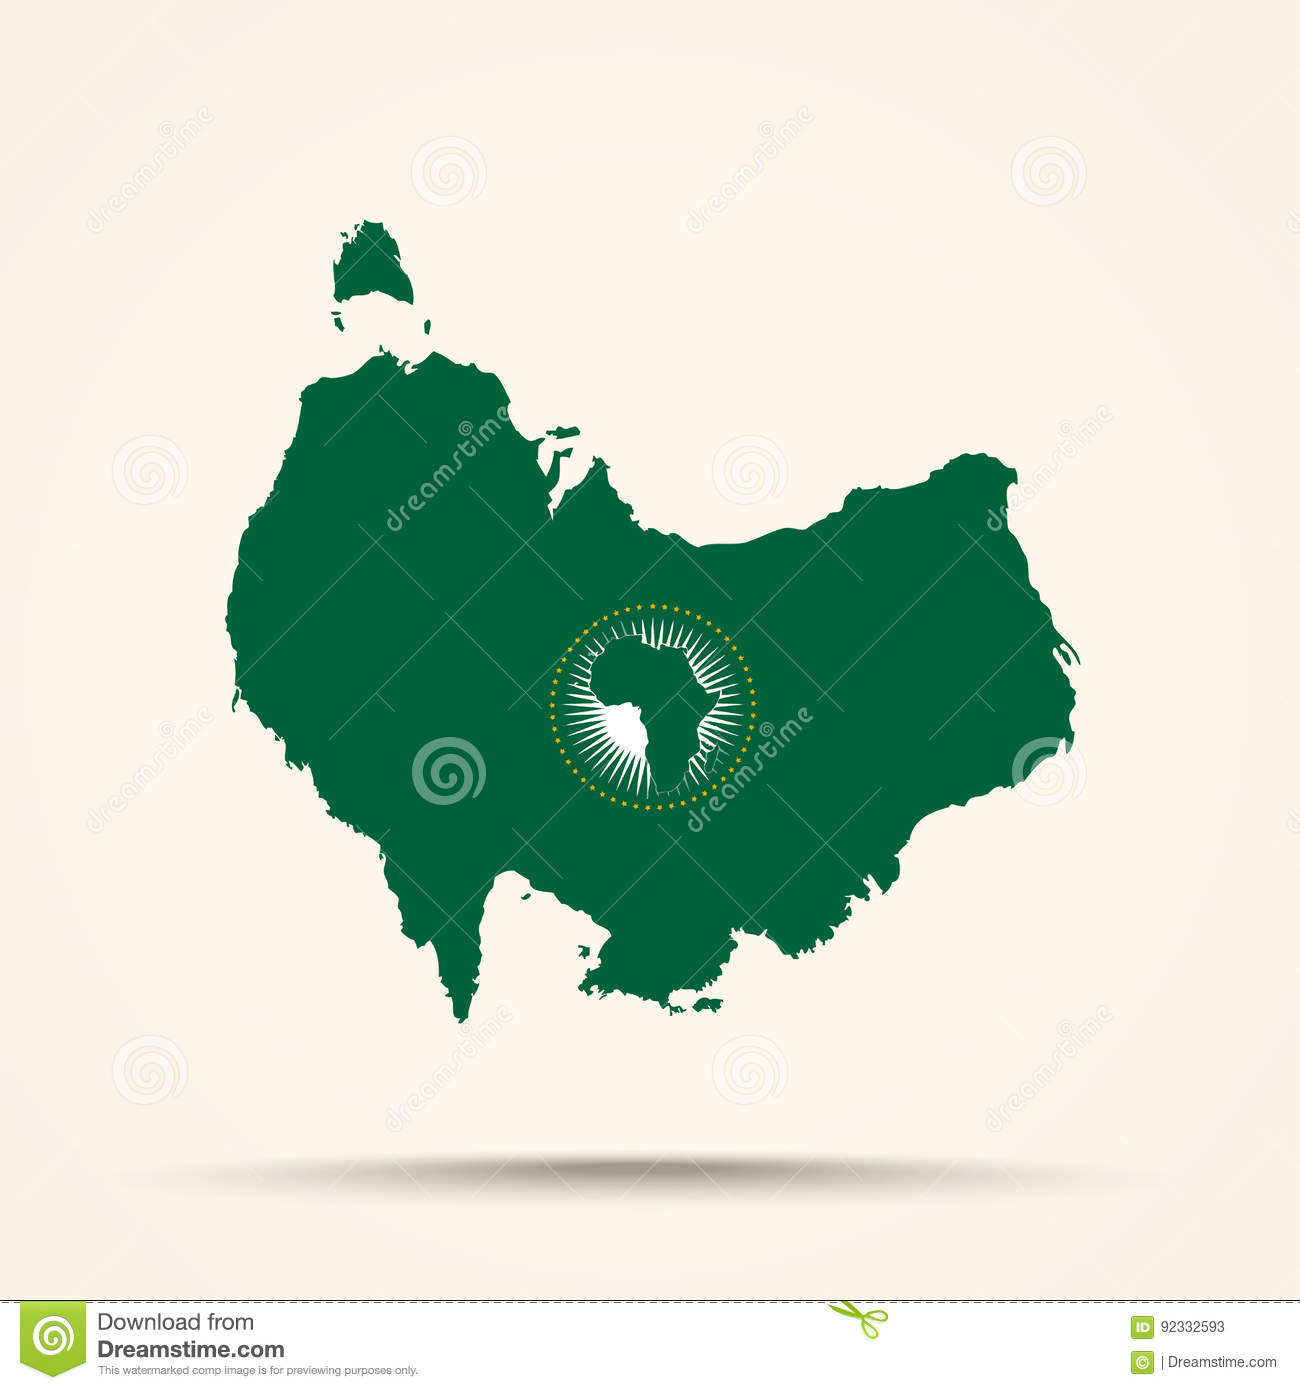 African Union Map.Map Of Australia In African Union Flag Colors Stock Vector